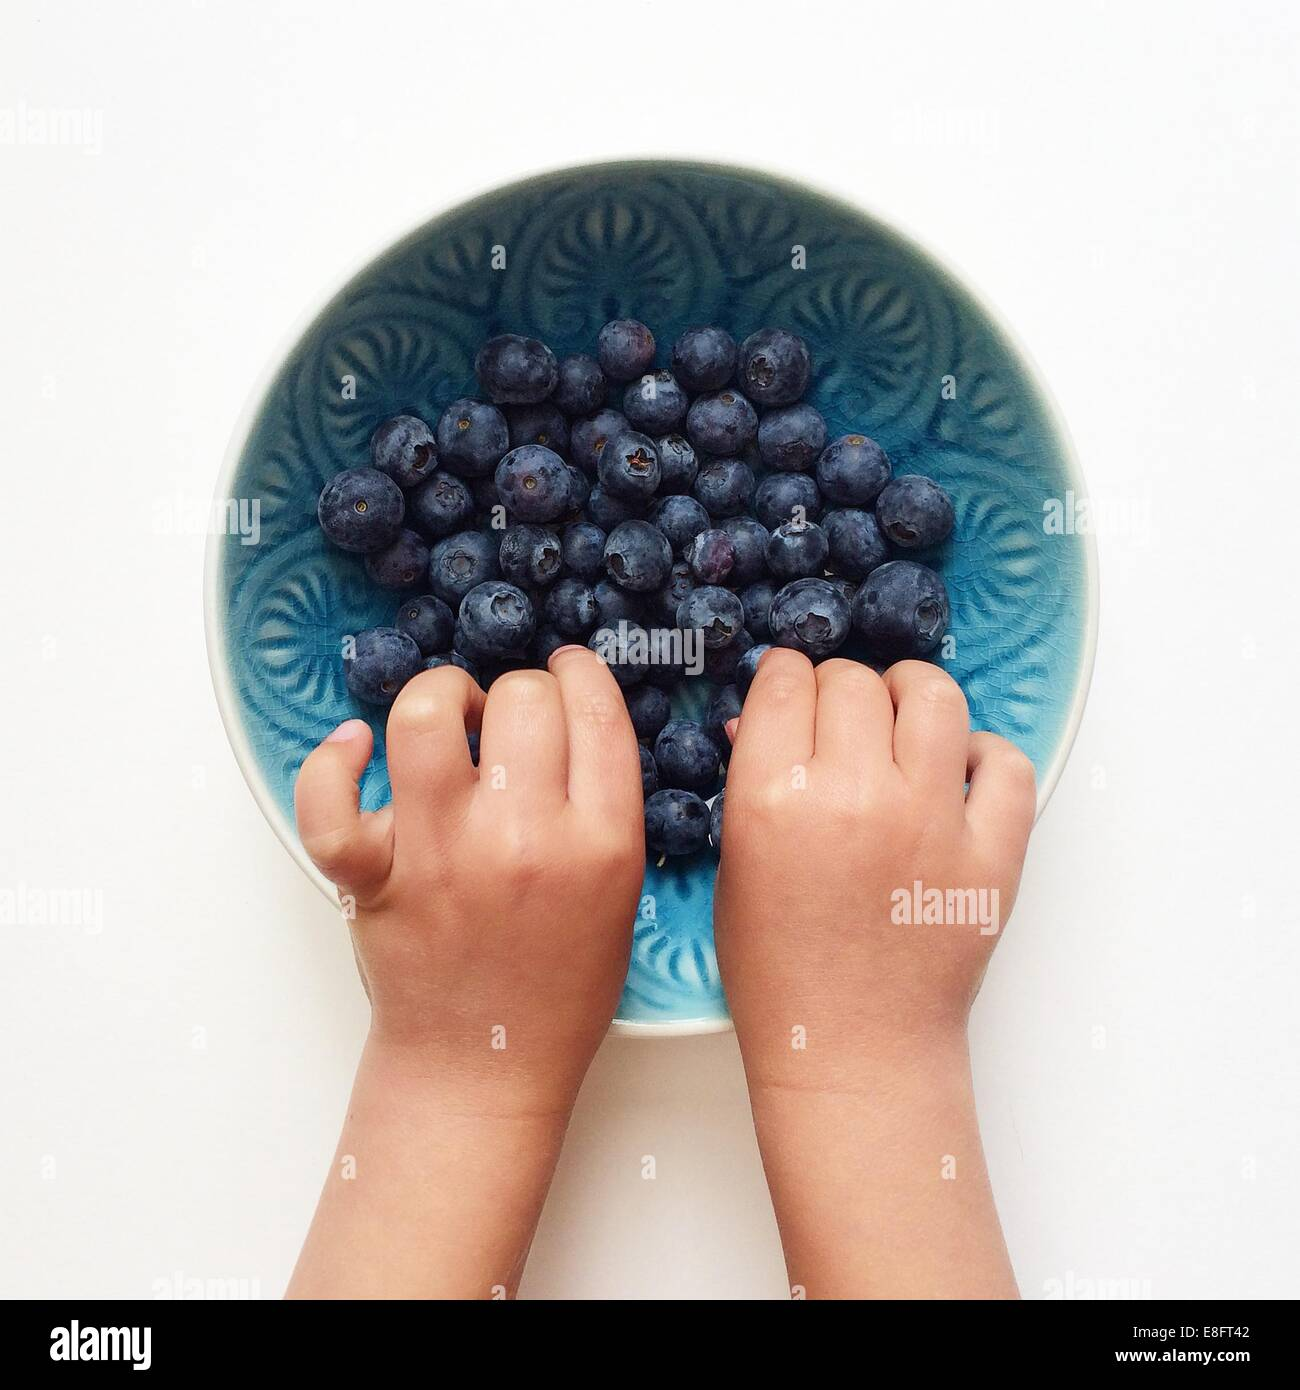 Boy's hands in a bowl of blueberries - Stock Image